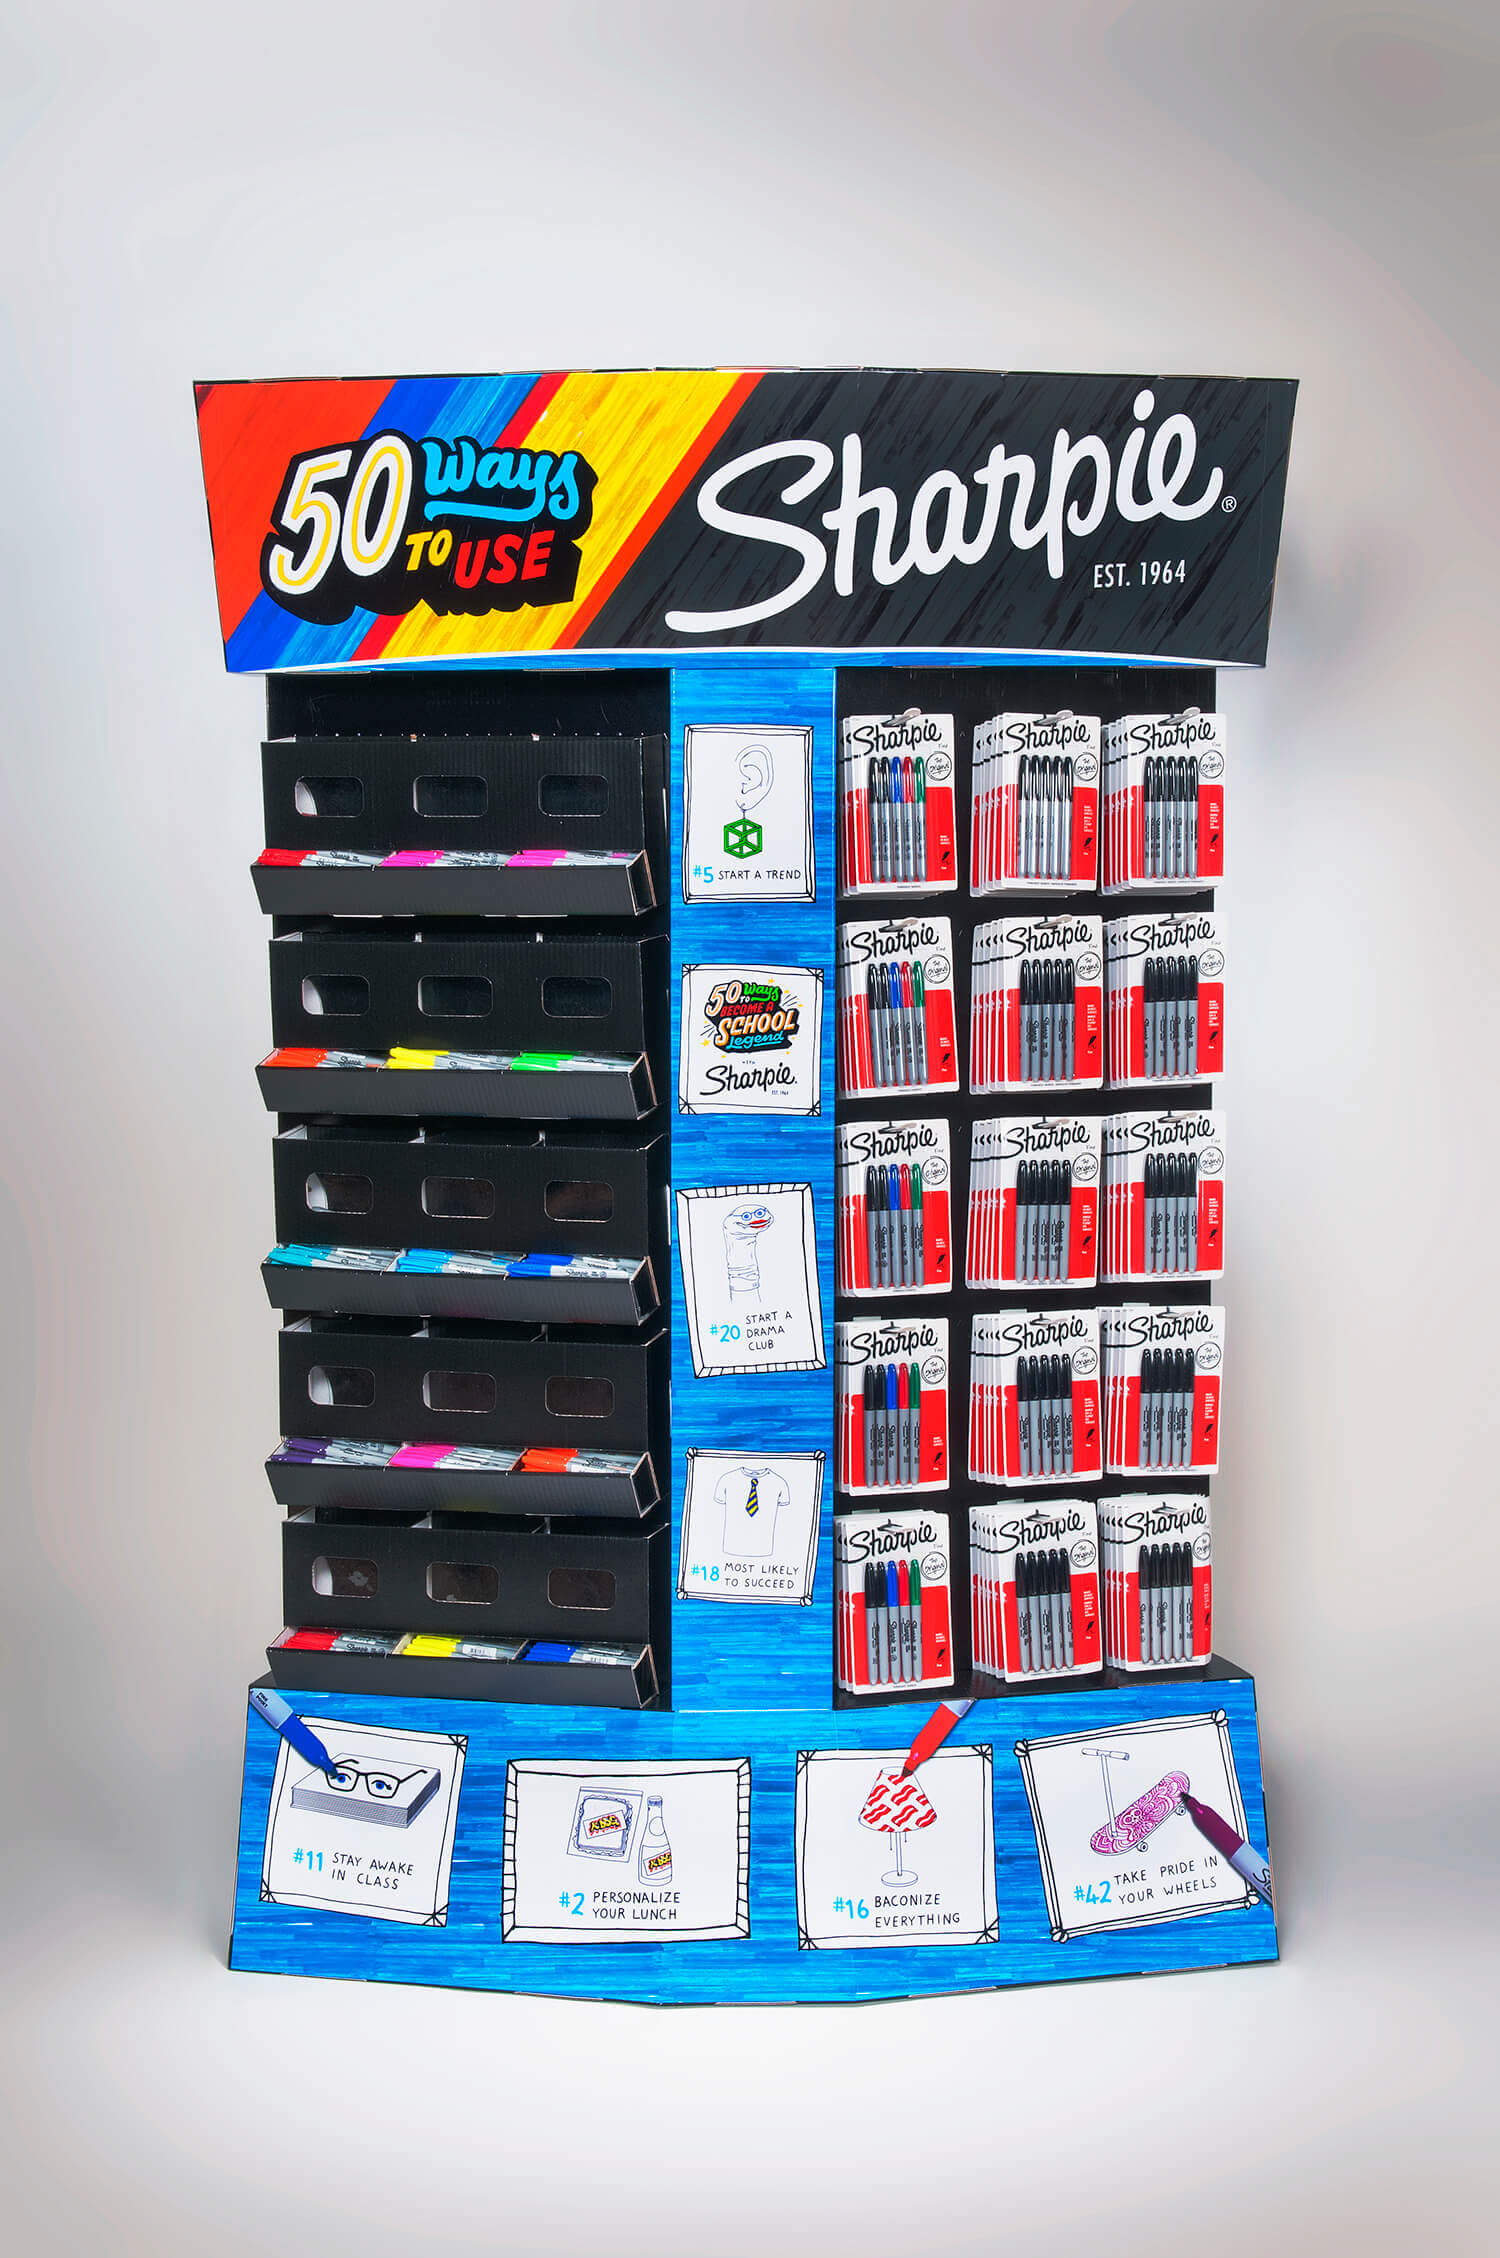 Sharpie marker and pen retail product display.